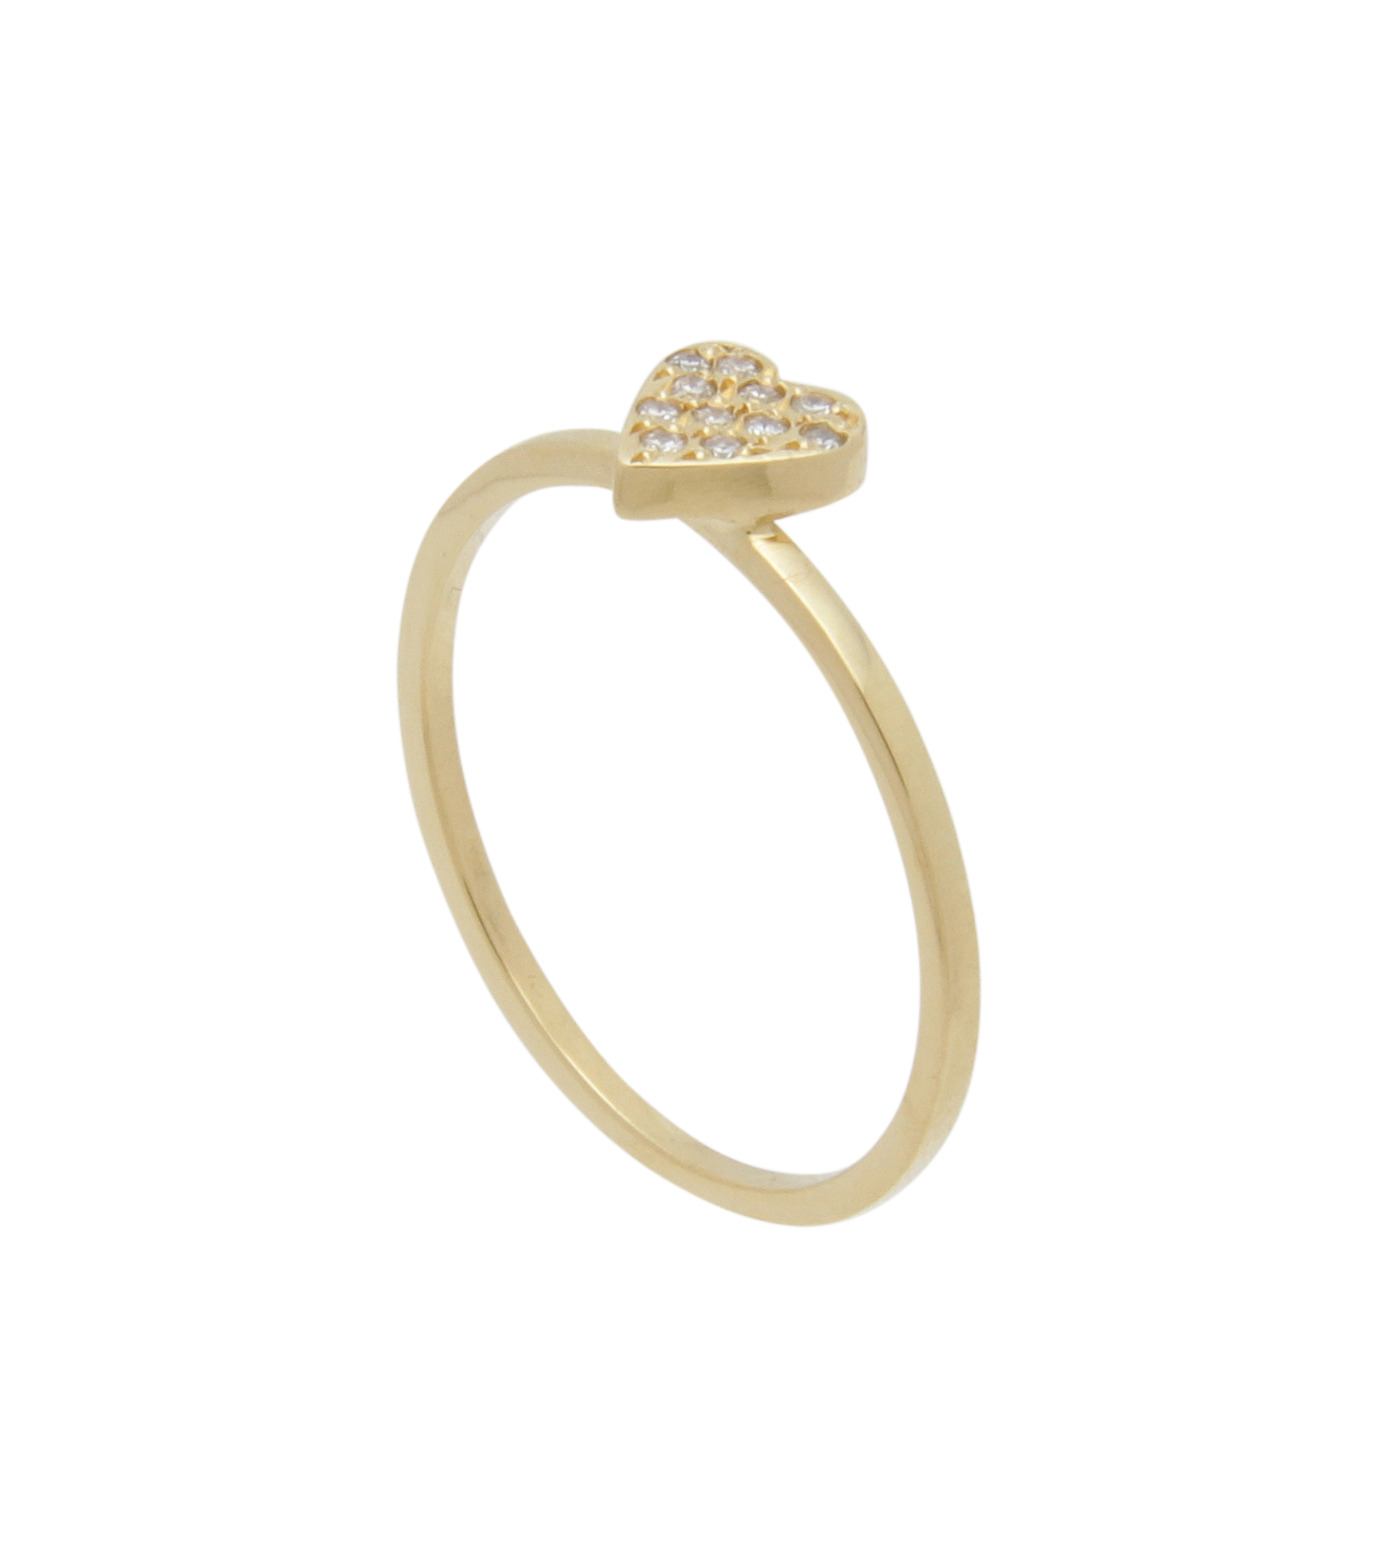 Ileana Makri(イリーナ マクリ)のLove Ring Yellow Gold-Diamond-GOLD(リング/ring)-O272-02-001-2 拡大詳細画像2